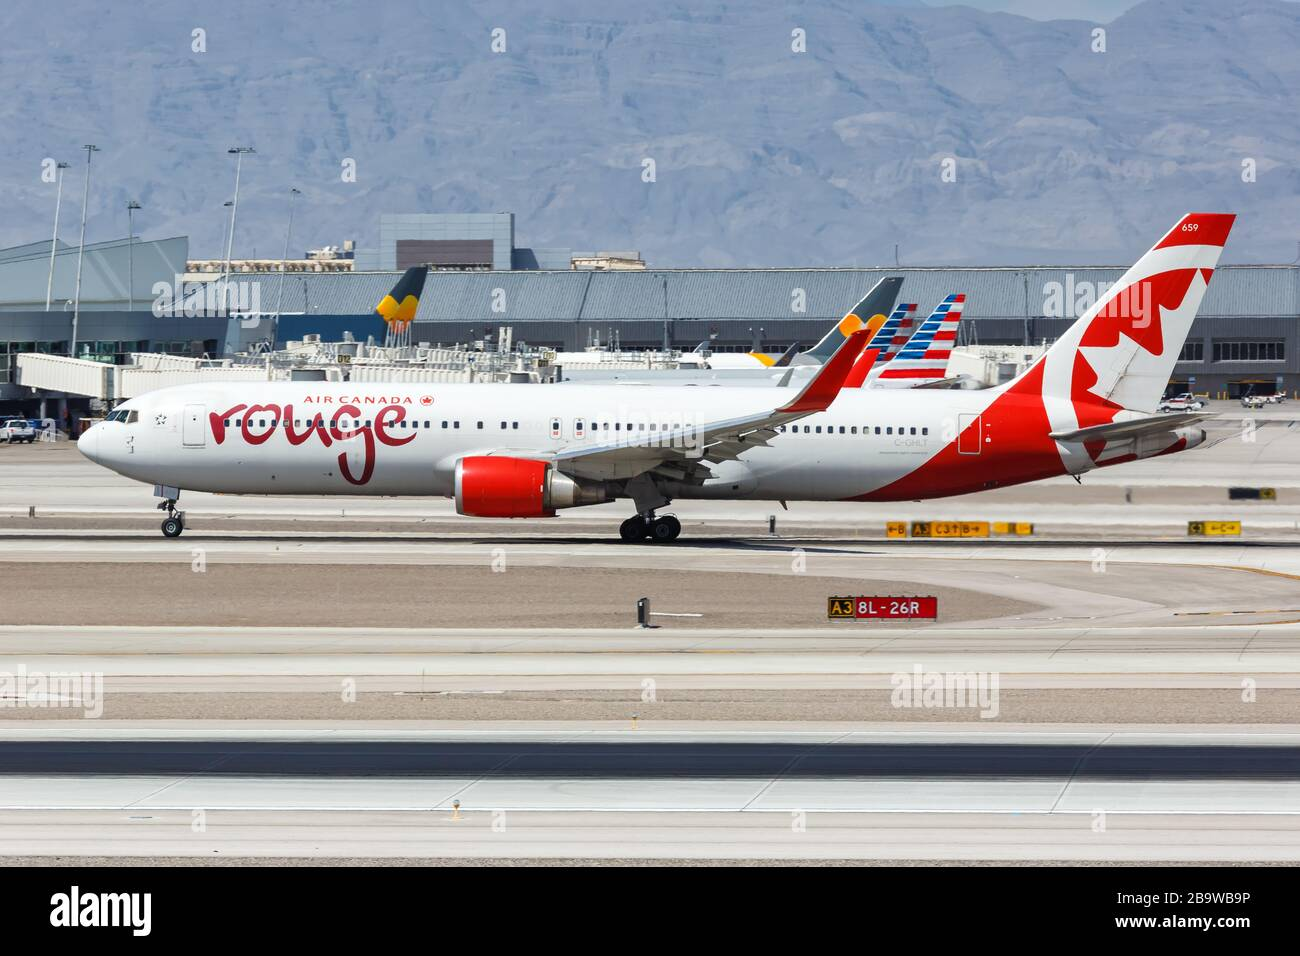 Las Vegas, Nevada – April 9, 2019: Air Canada Rouge Boeing 767-300ER airplane at Las Vegas airport (LAS) in Nevada. Boeing is an American aircraft man Stock Photo